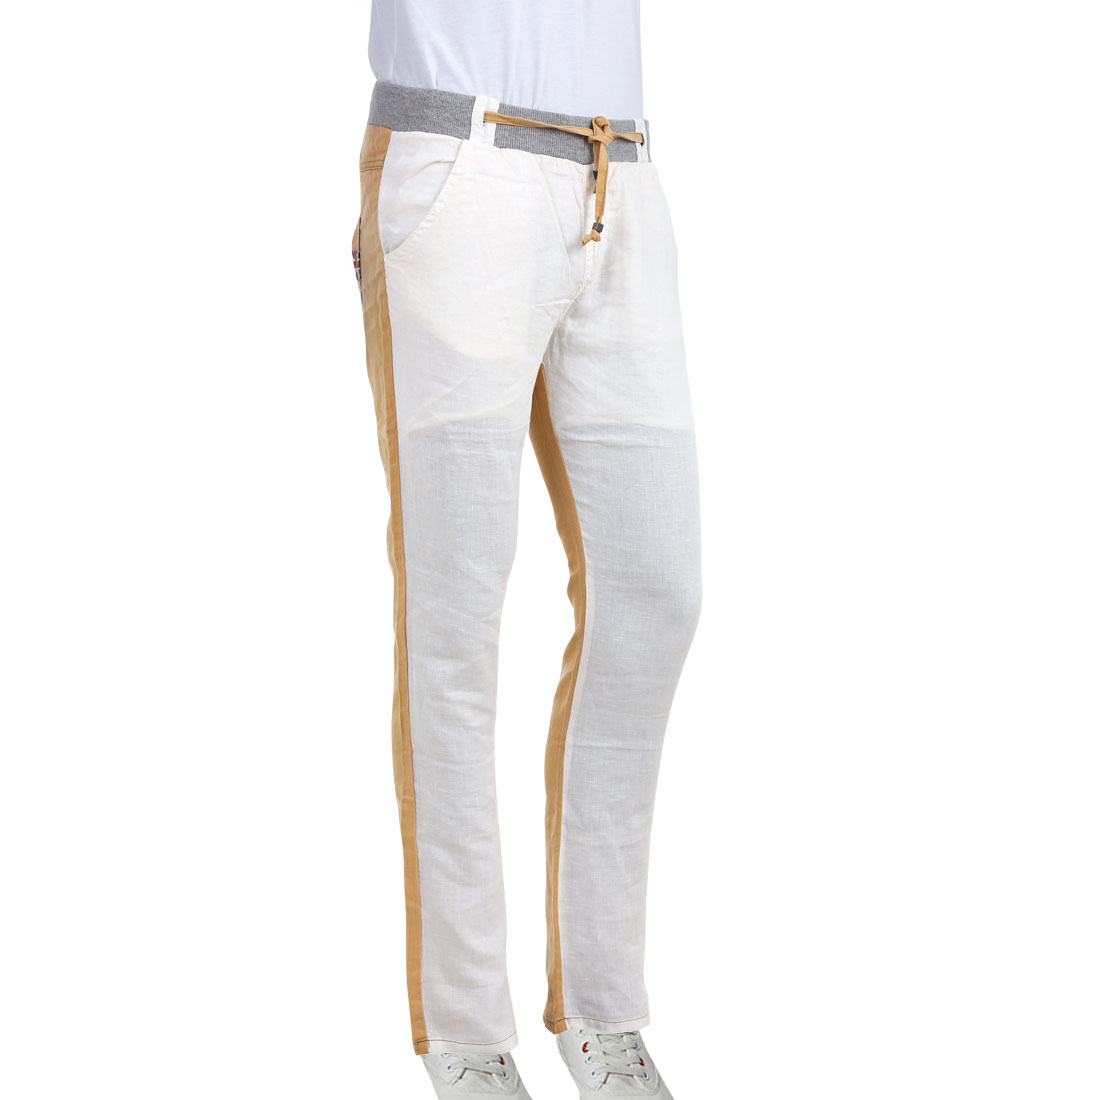 Men Drawstring Waist Stretchy Hip Patch Pockets White Camel Pants W29